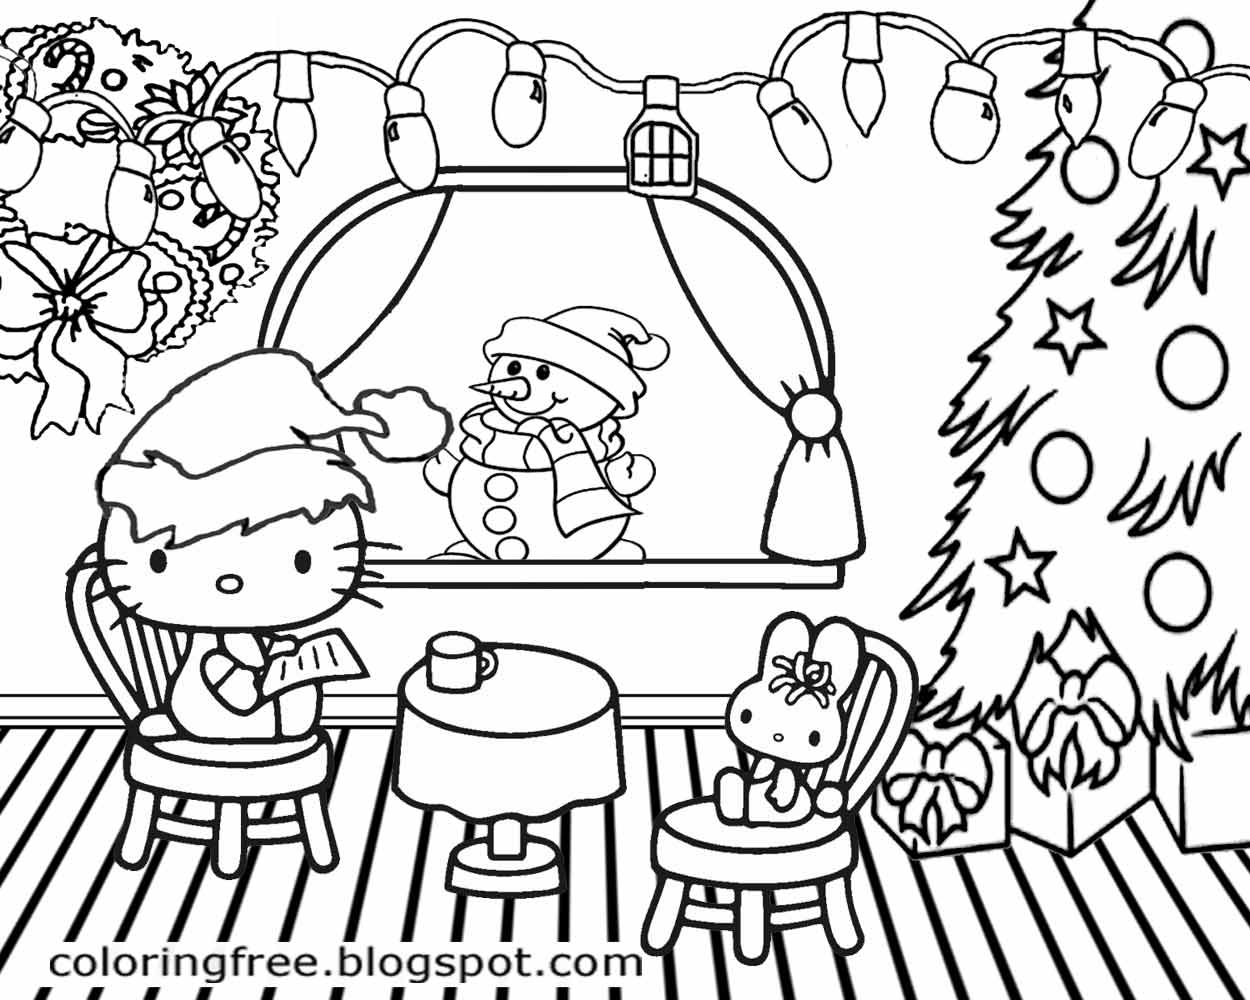 creative coloring pages for teens - photo#3